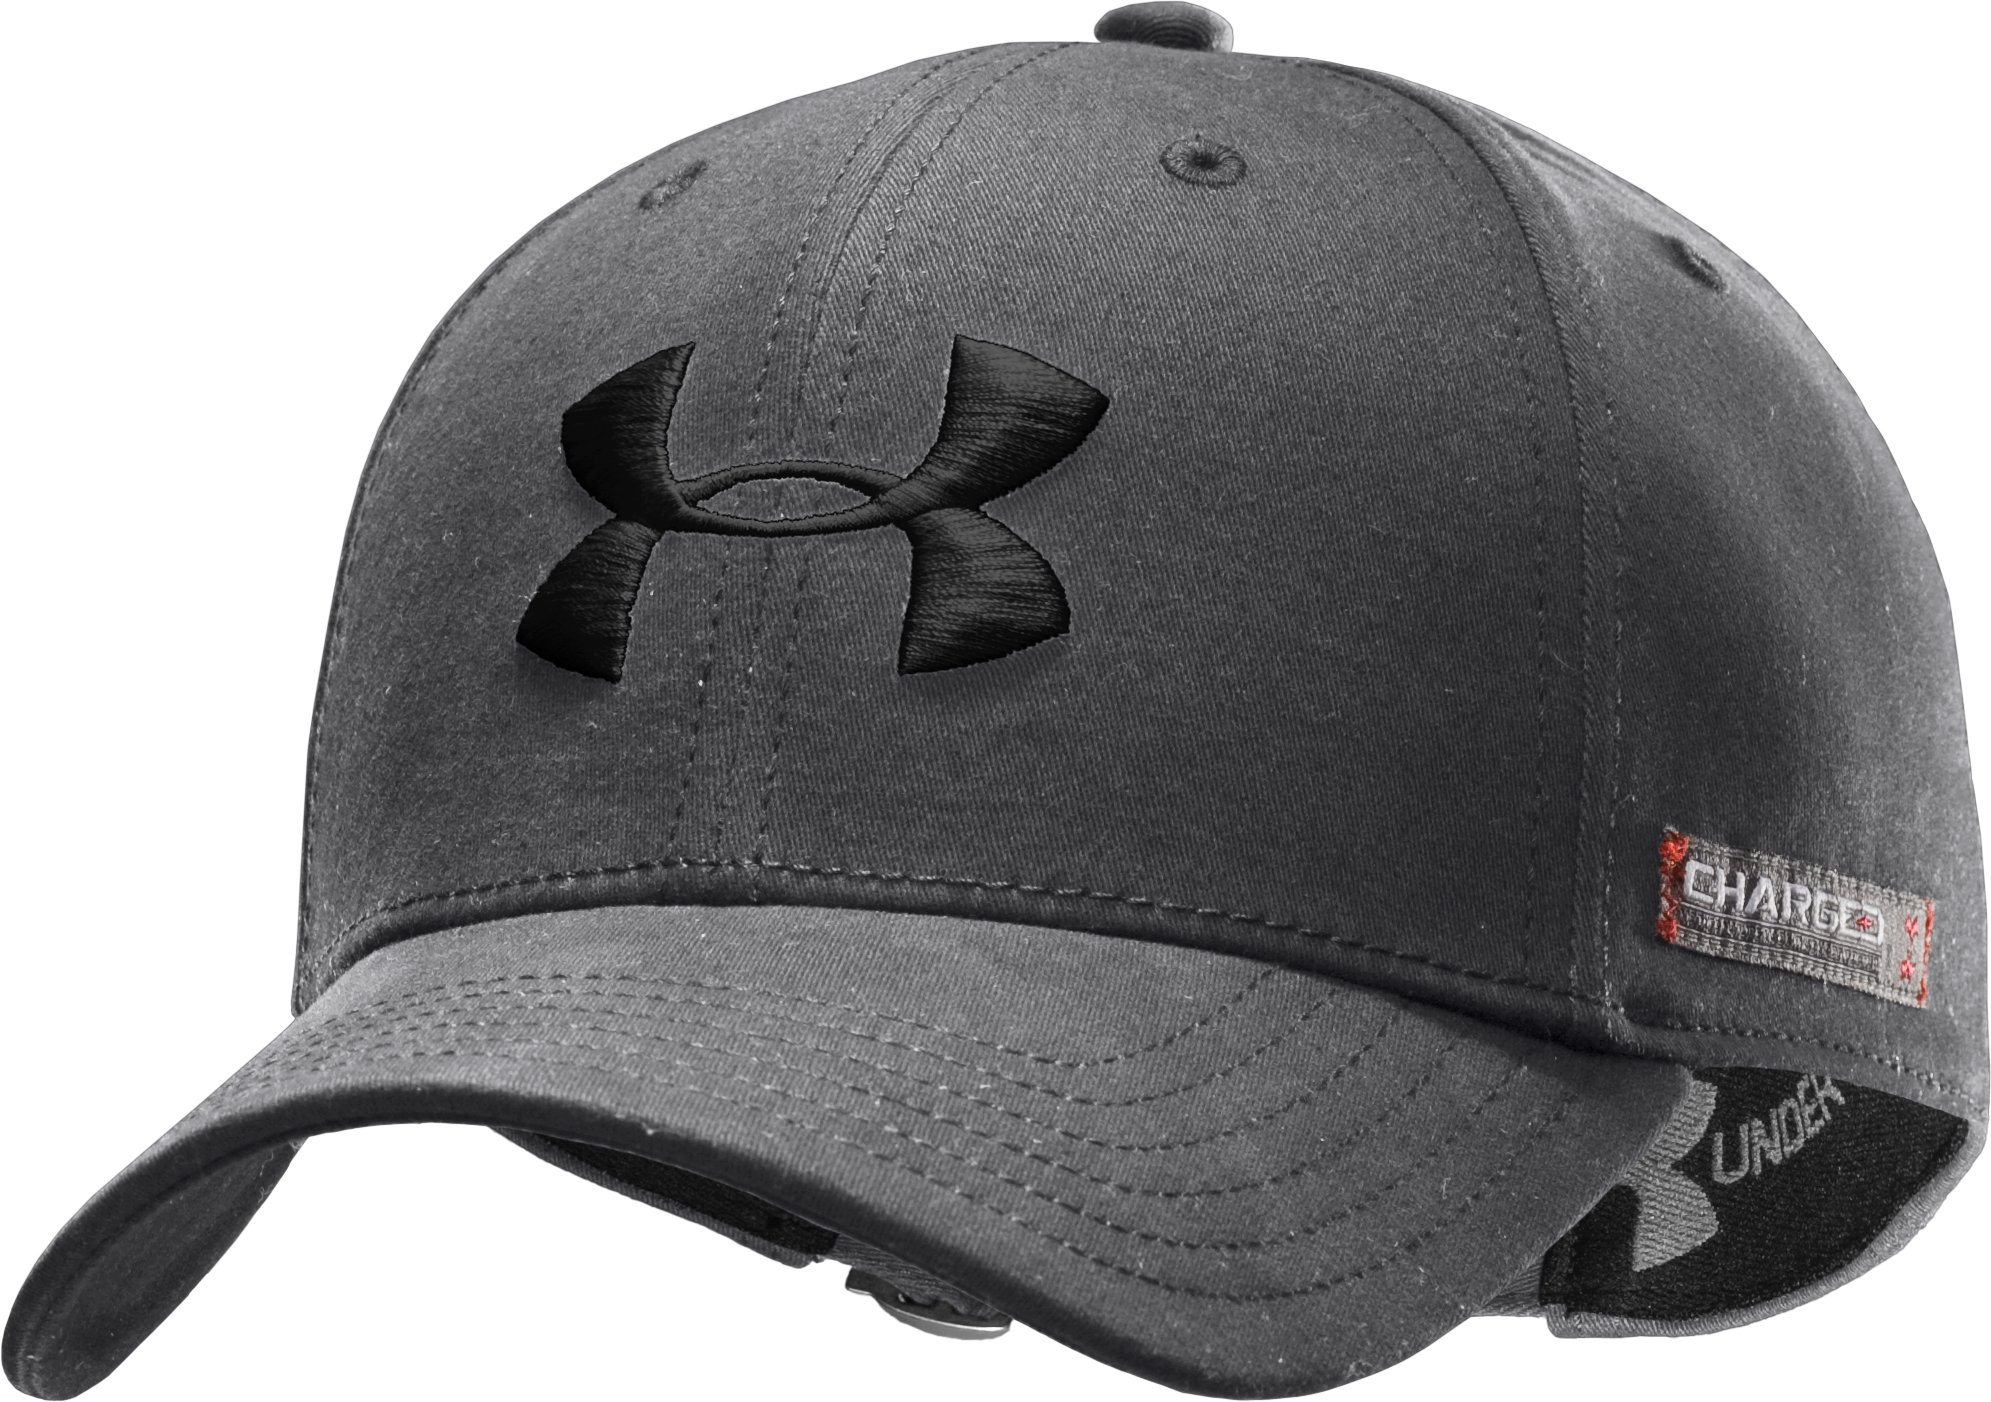 Men's Charged Cotton® Adjustable Cap, Graphite, undefined